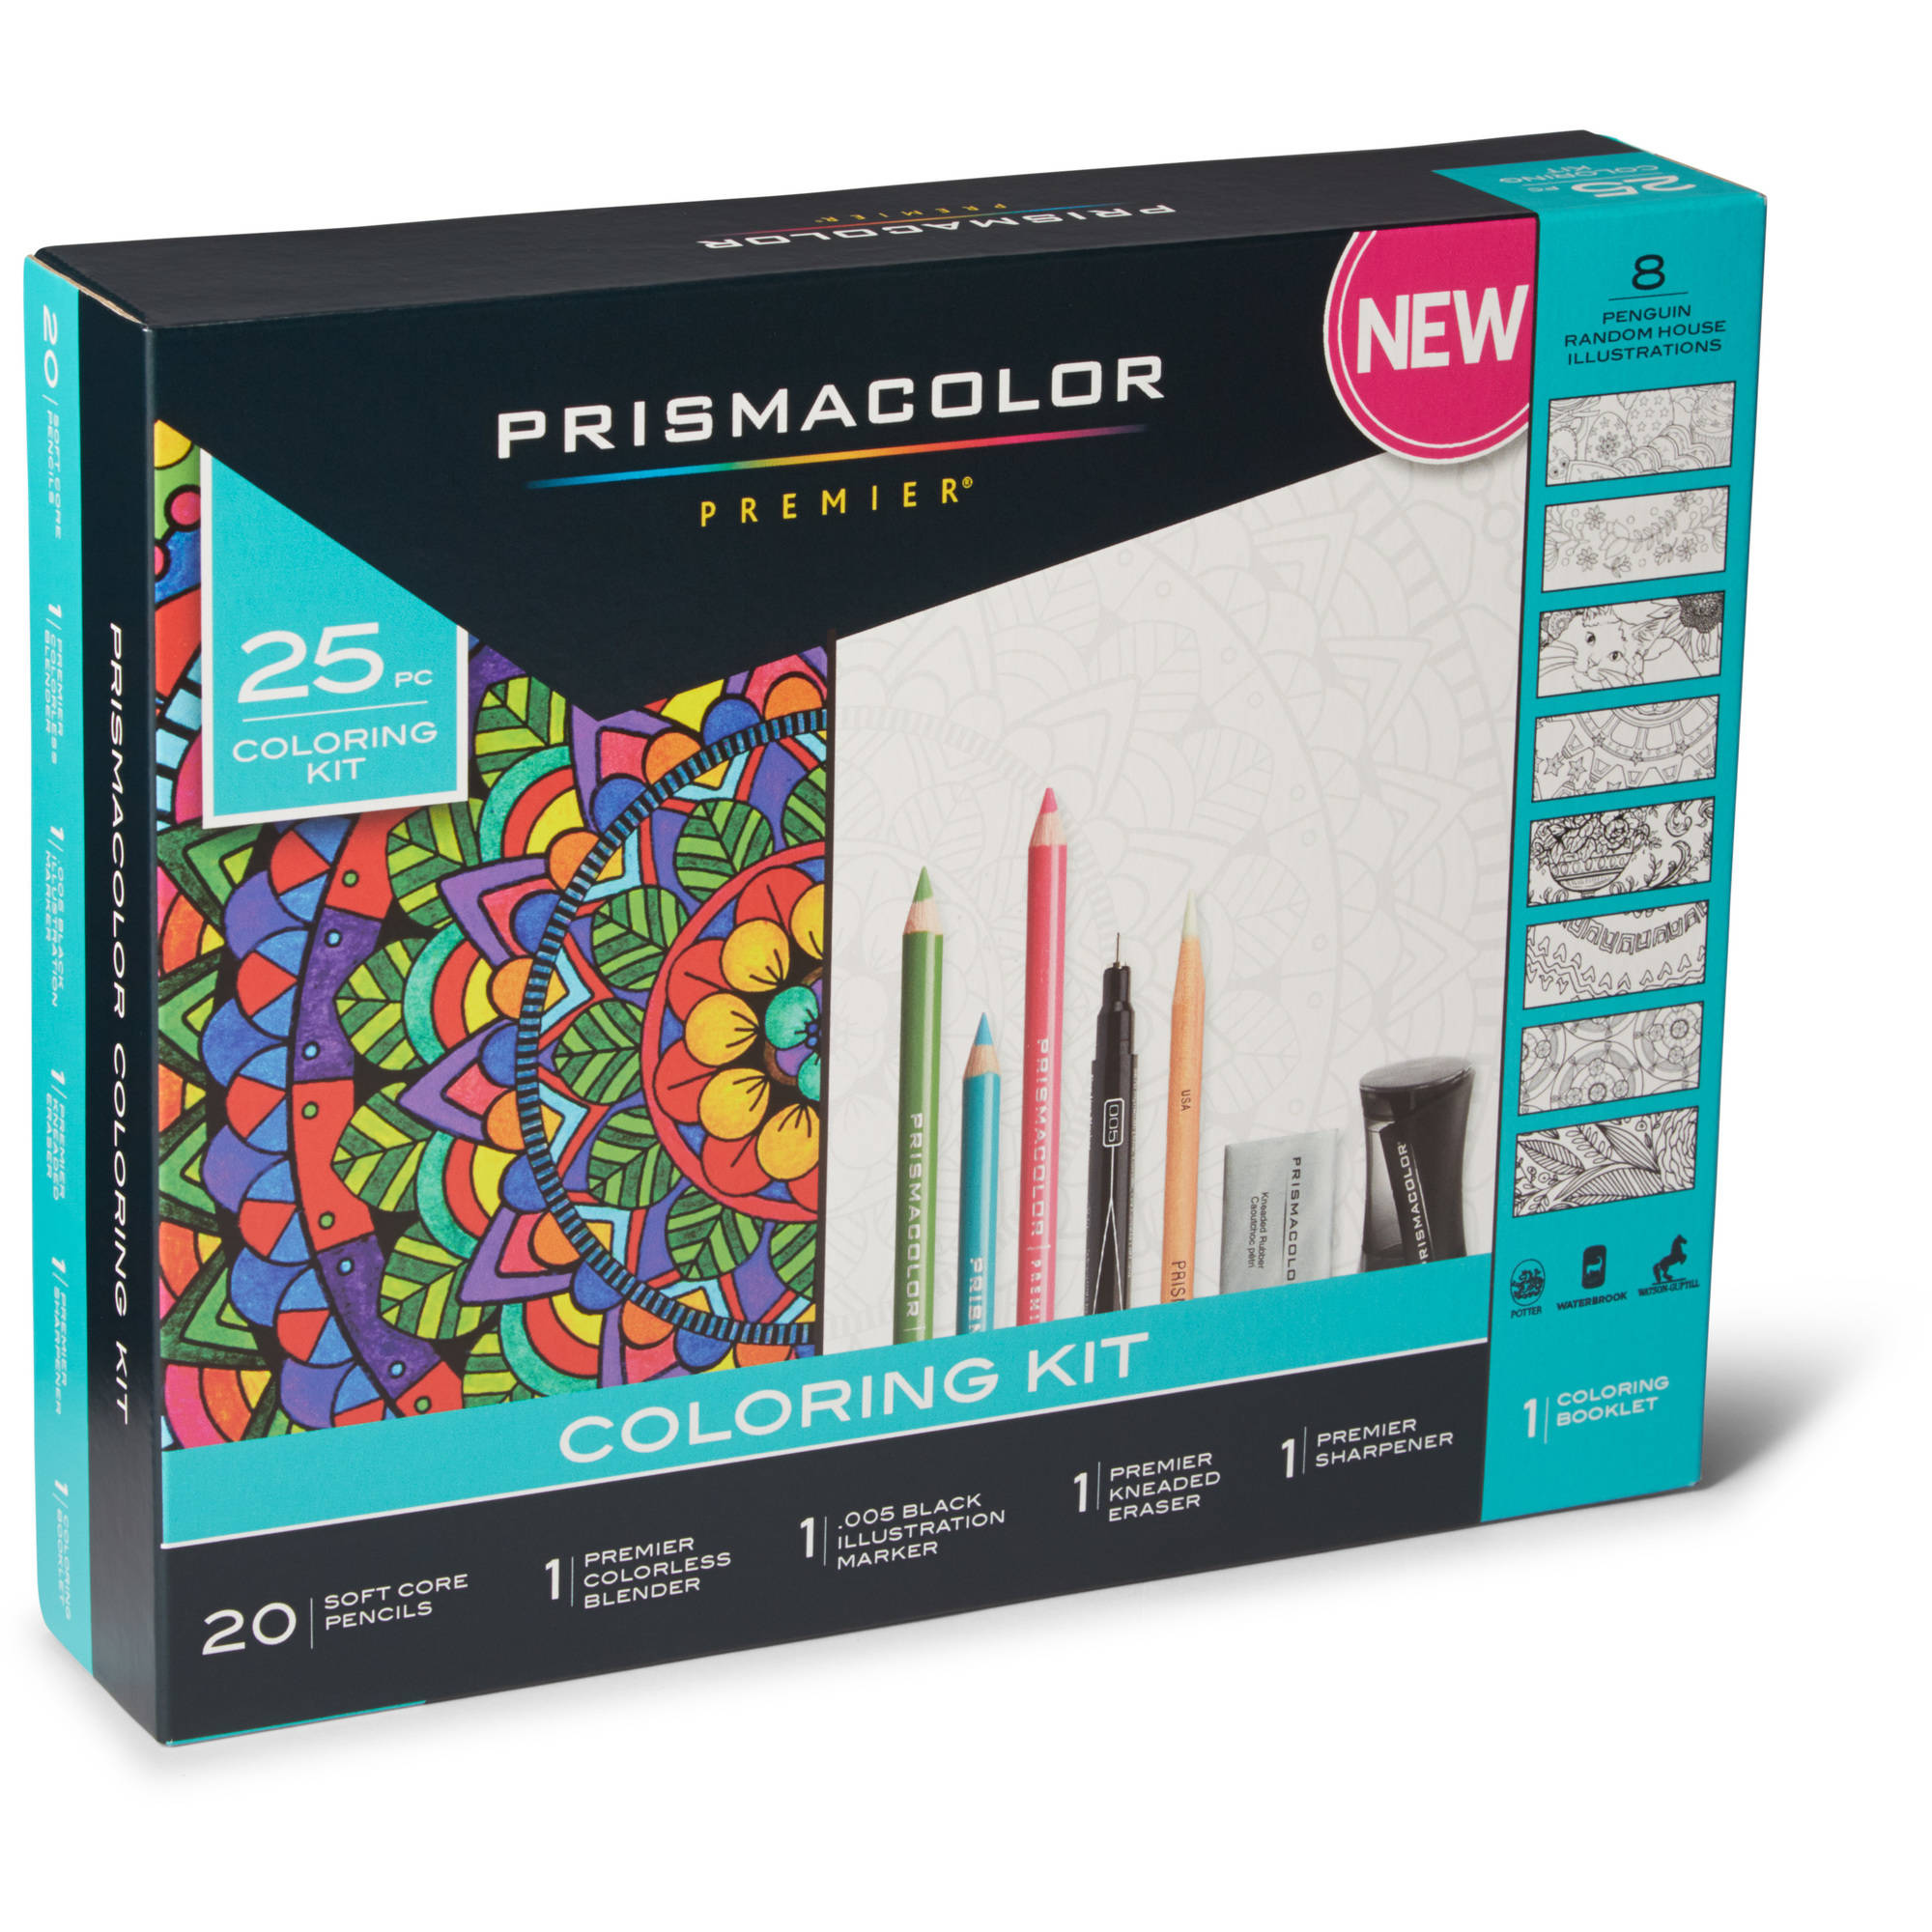 Prismacolor Premier Adult Coloring Book Kit - 25 Piece Set